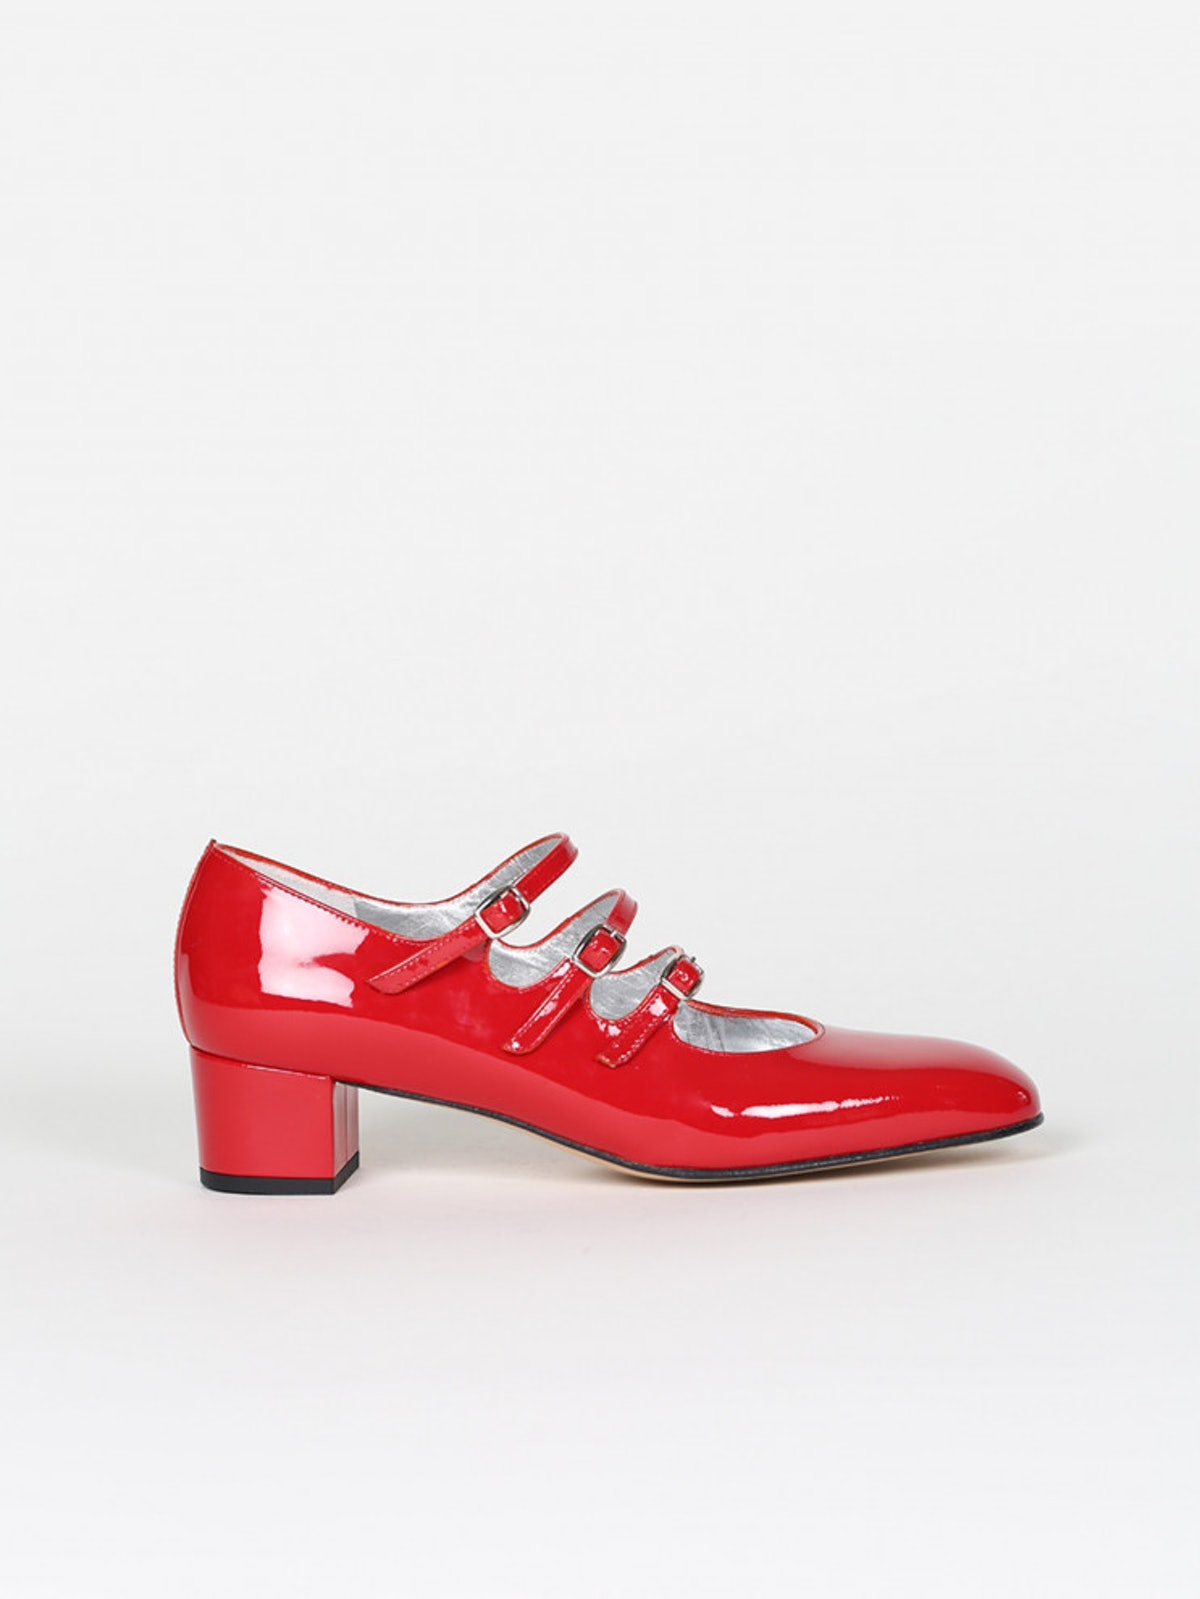 Kina Red Patent Leather Mary Janes